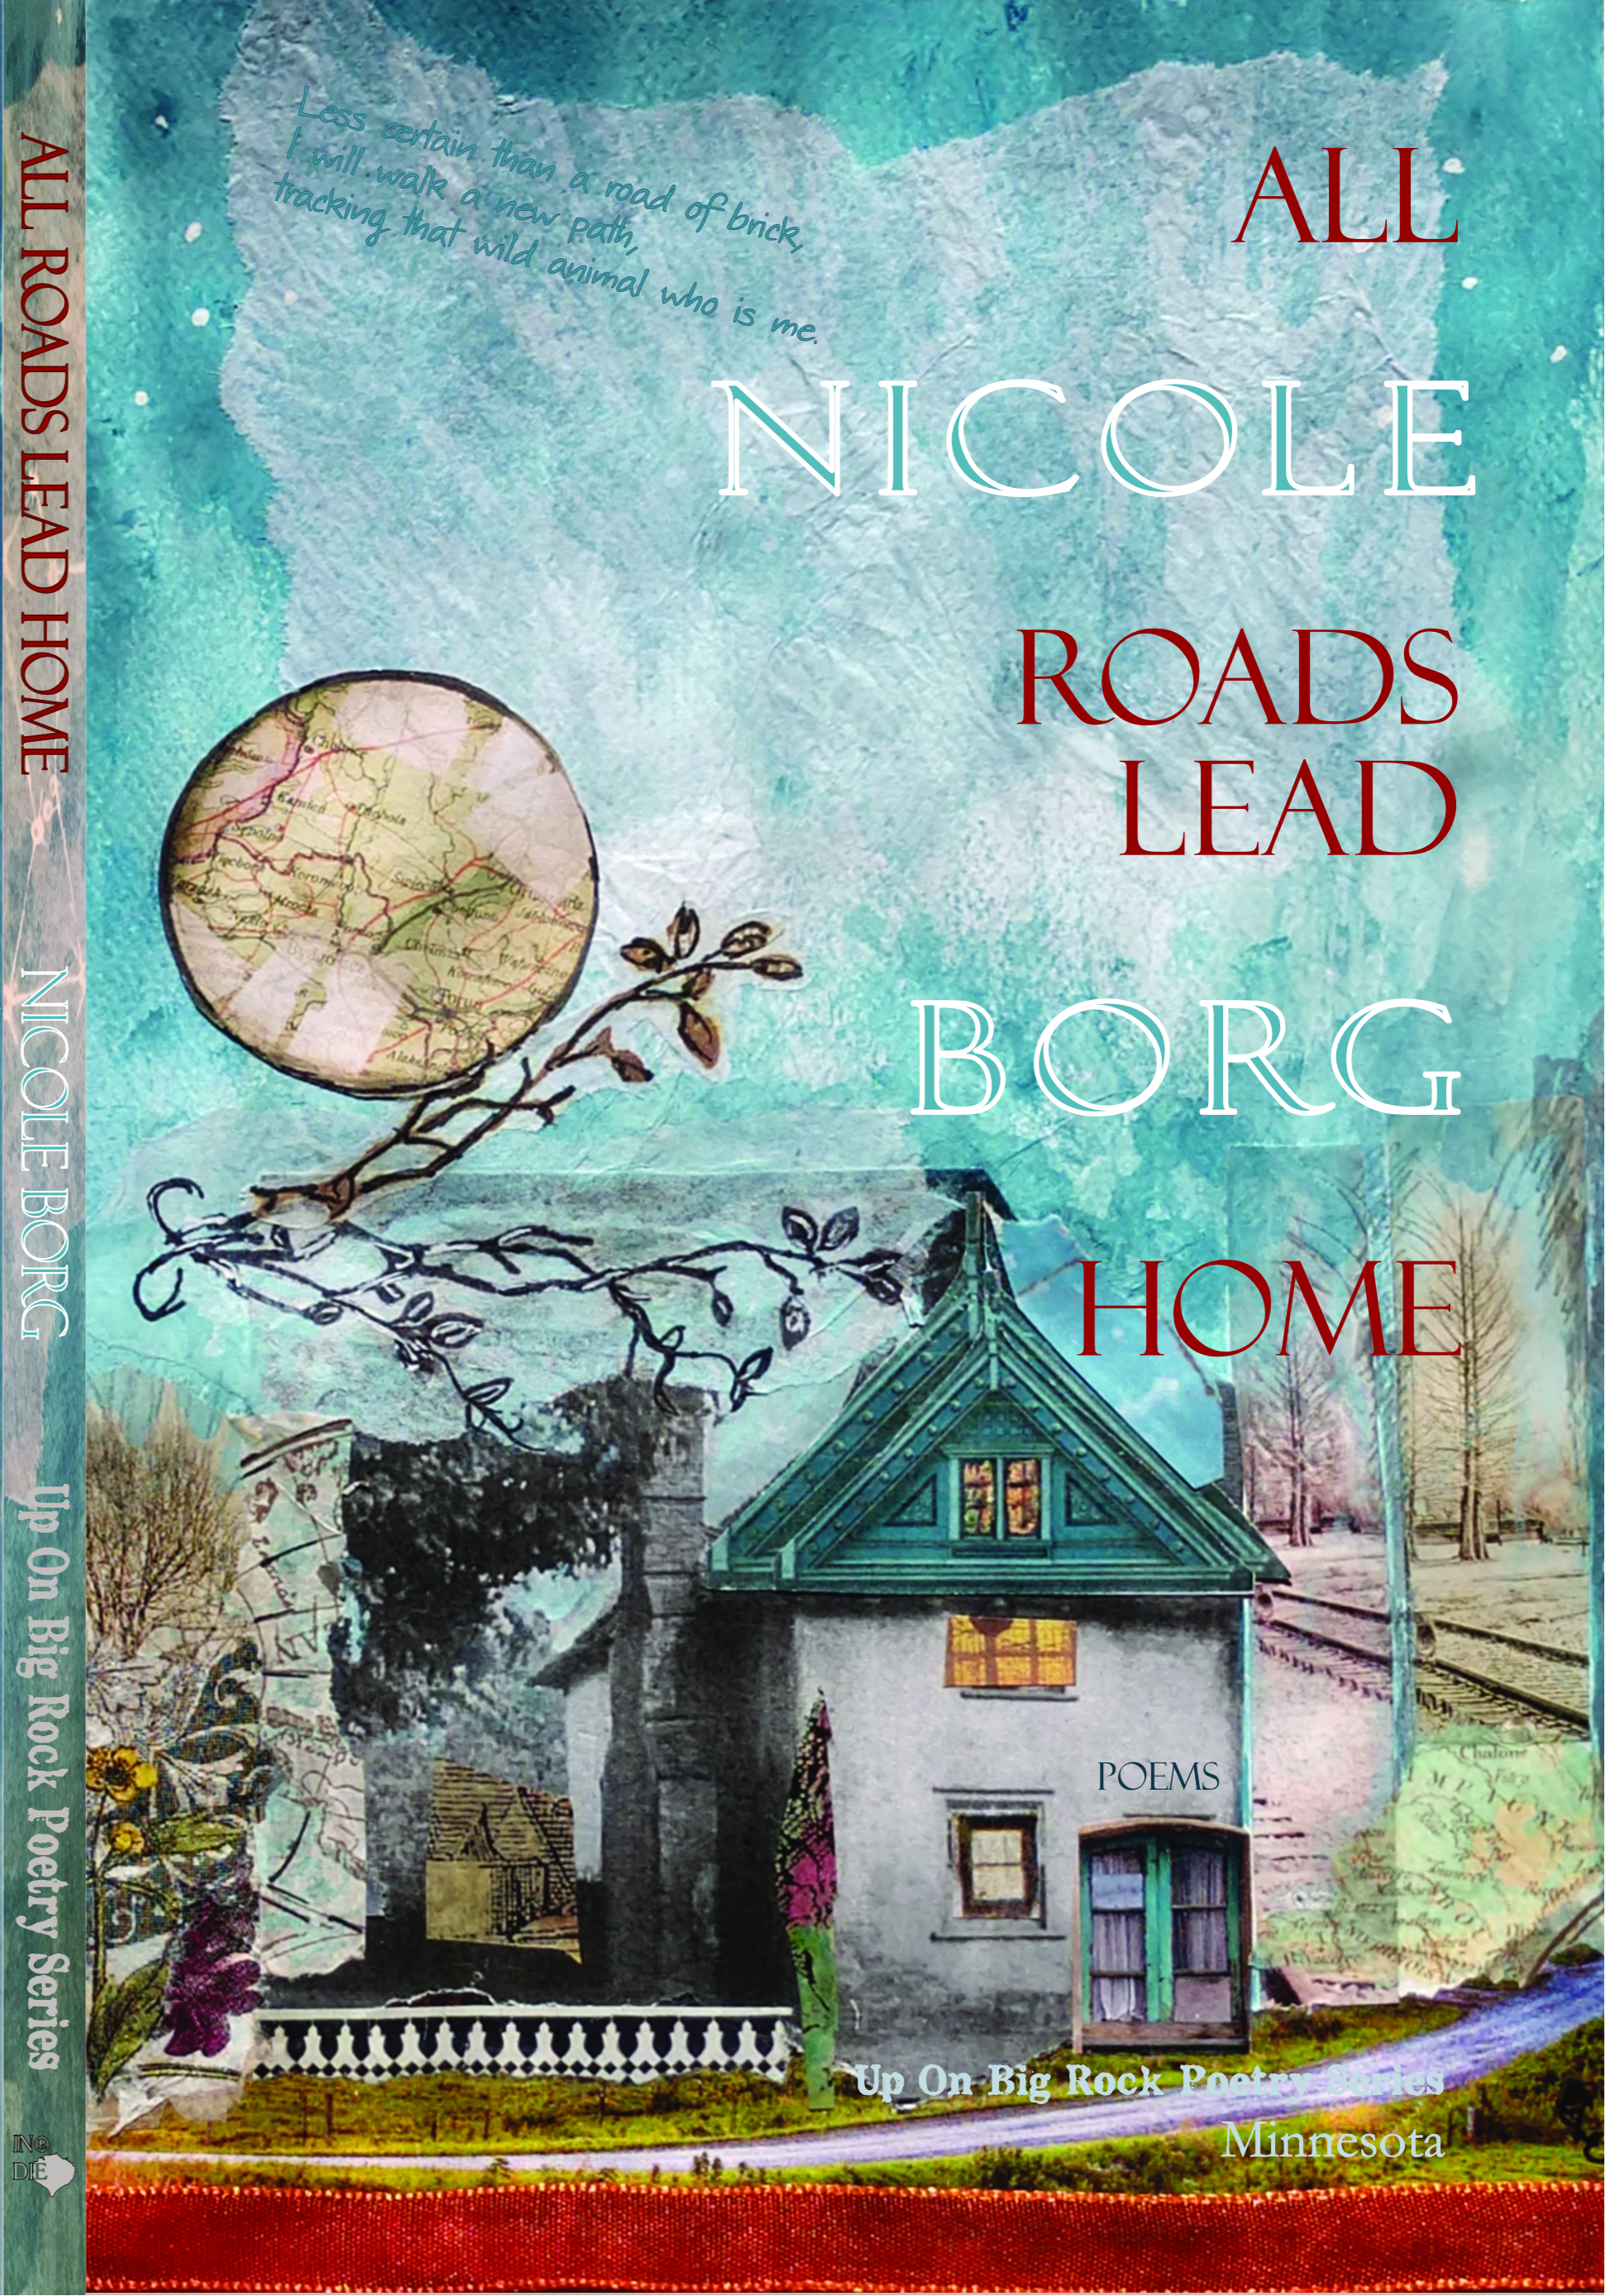 All Roads Lead Home - by Nicole Borg was published in 2018 by Up On Big Rock Poetry Series an imprint of Shipwreckt Books Publishing Company.